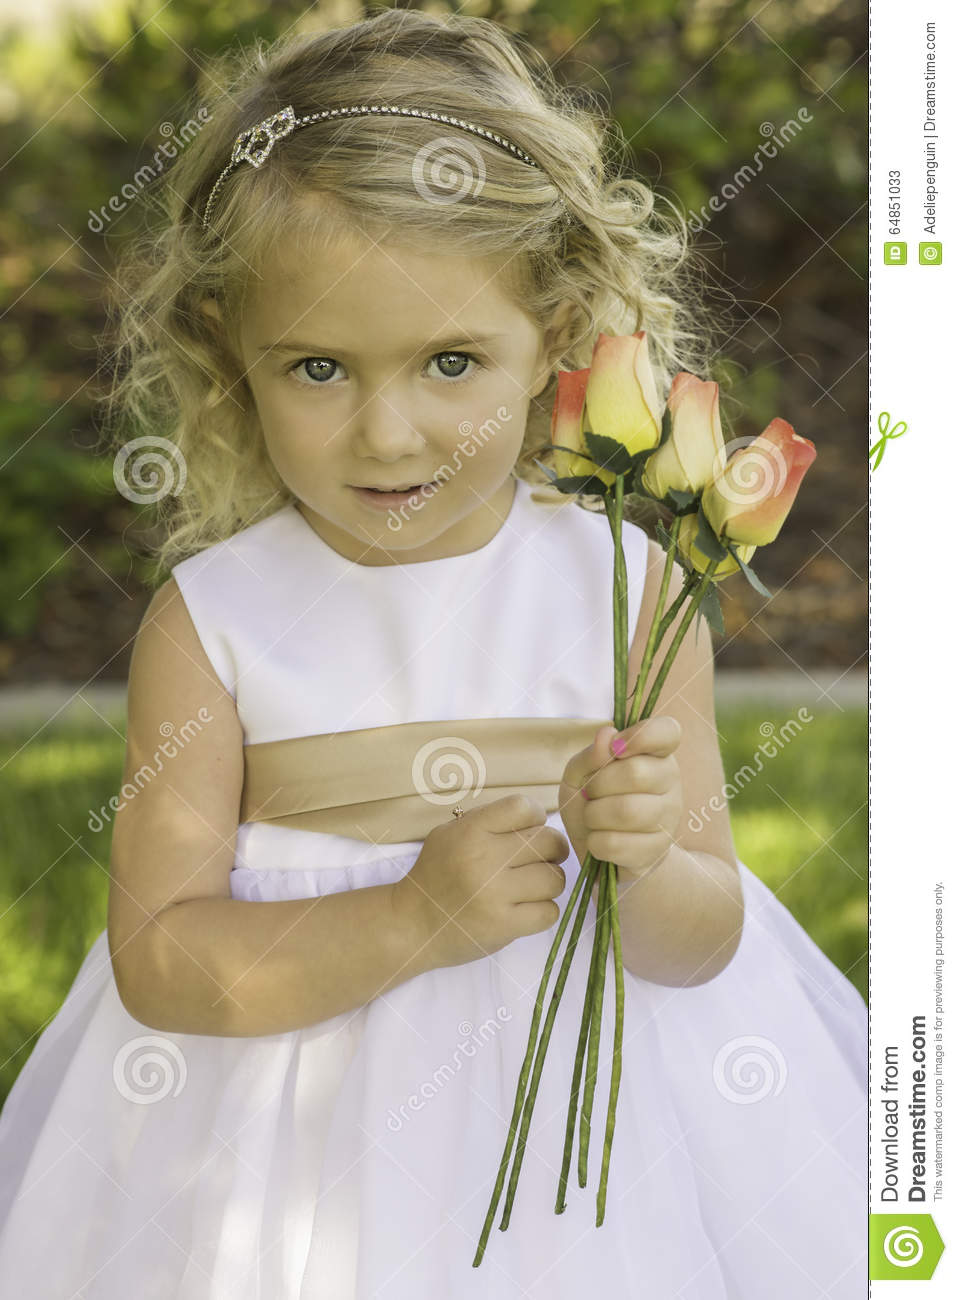 Little Girl Holding Flowers Stock Image Image Of Holding Field